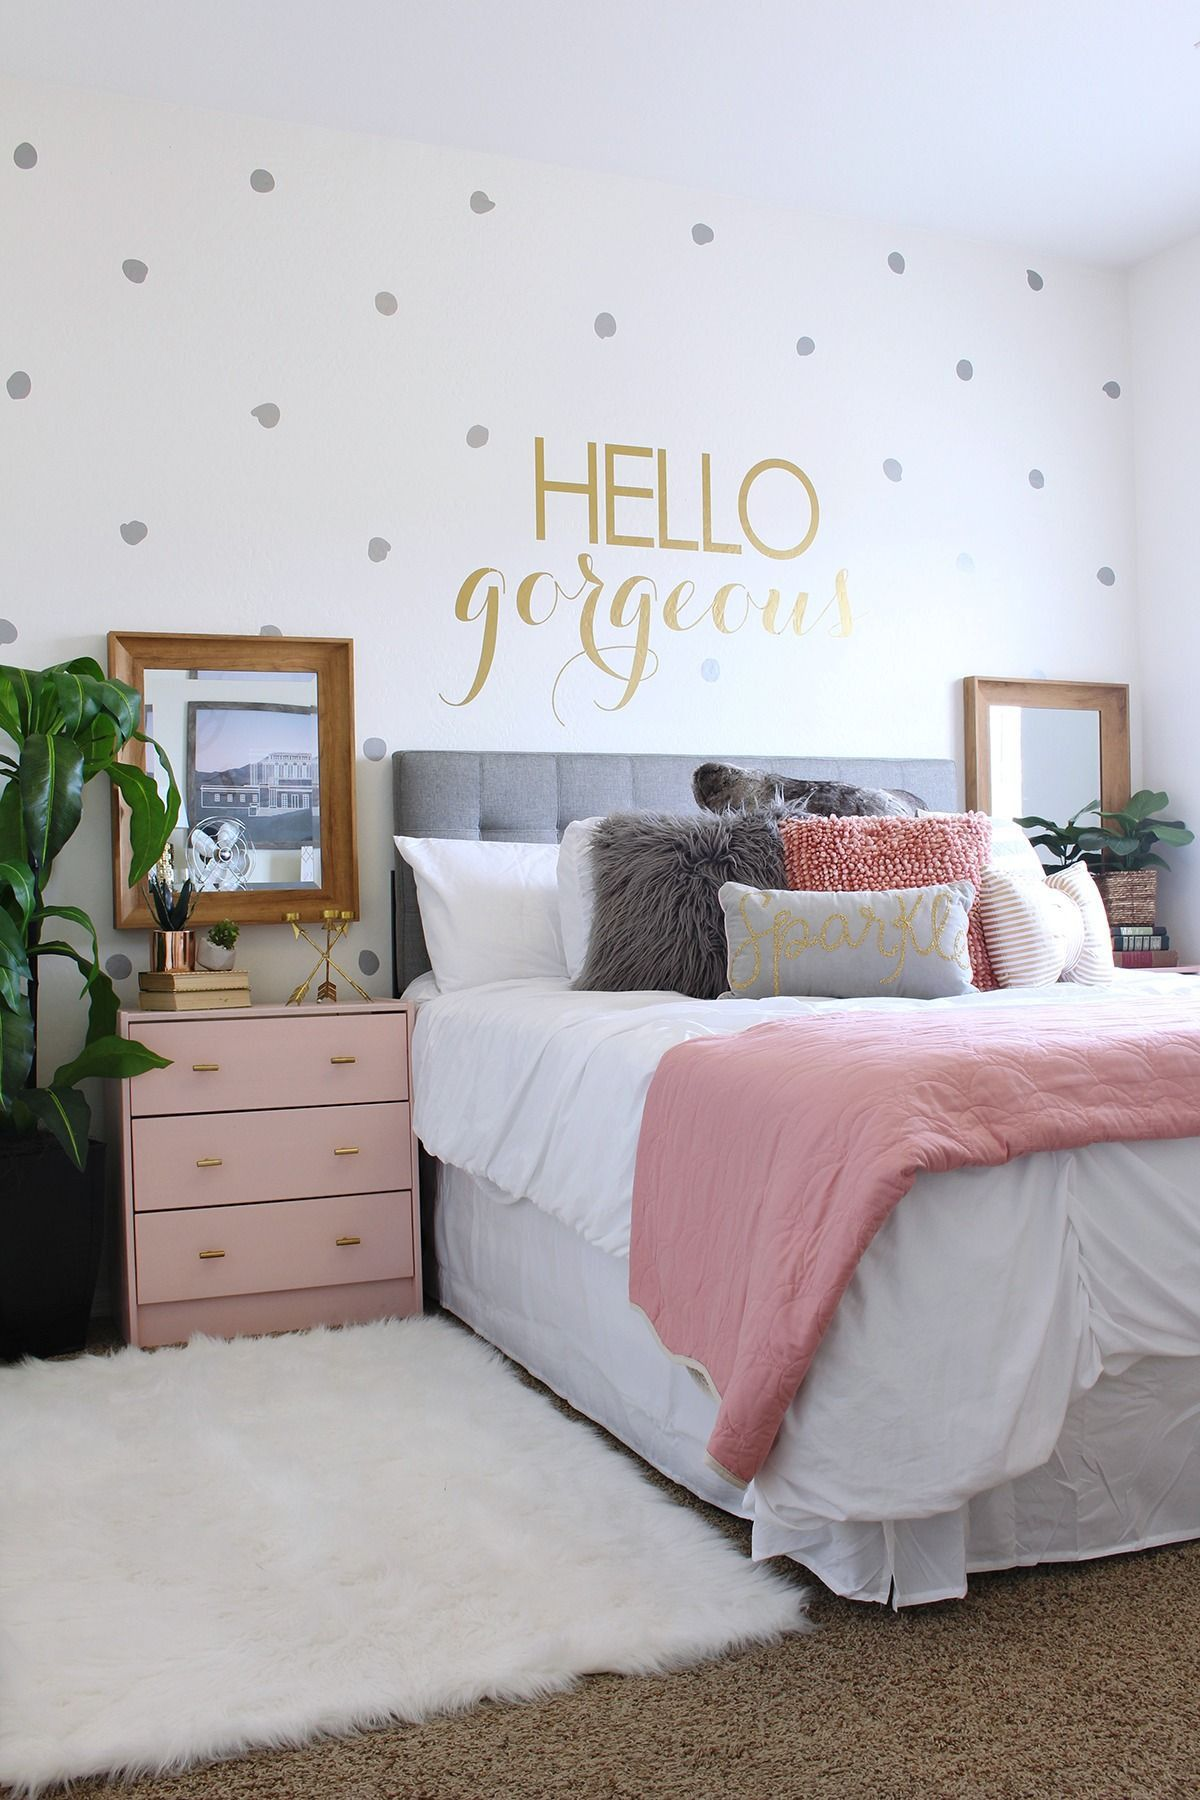 Best Of Pinterest Deco Chambre Fille Idees Deco Chambre Fille